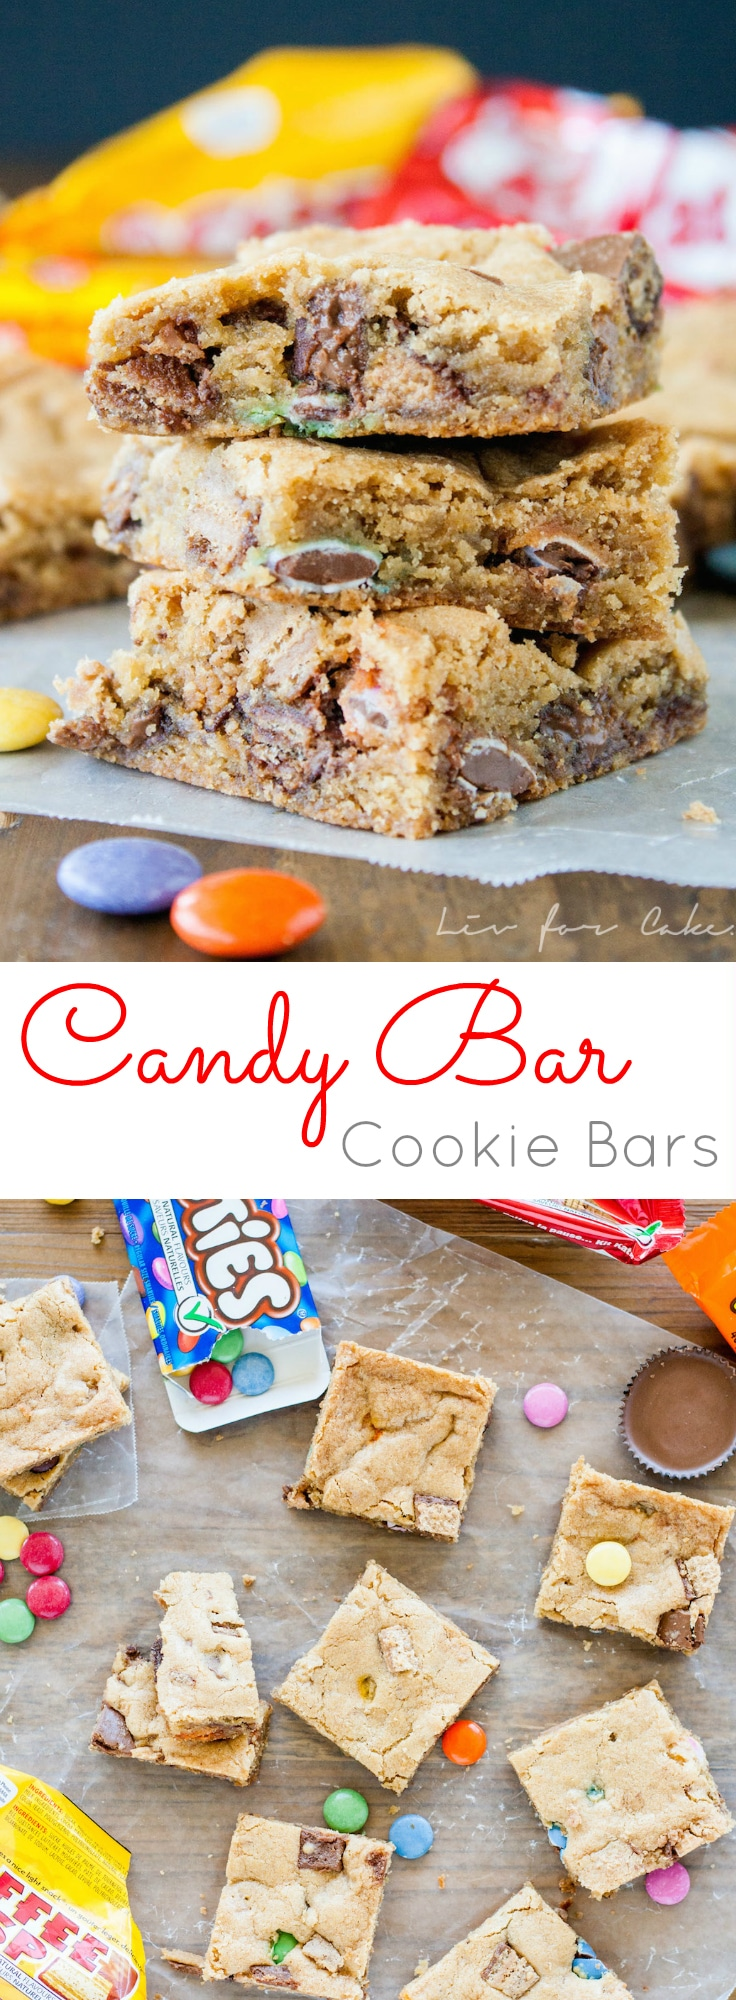 Super easy Candy Bar Cookie Bars that can be made with almost any candy bar of your choice! | livforcake.com